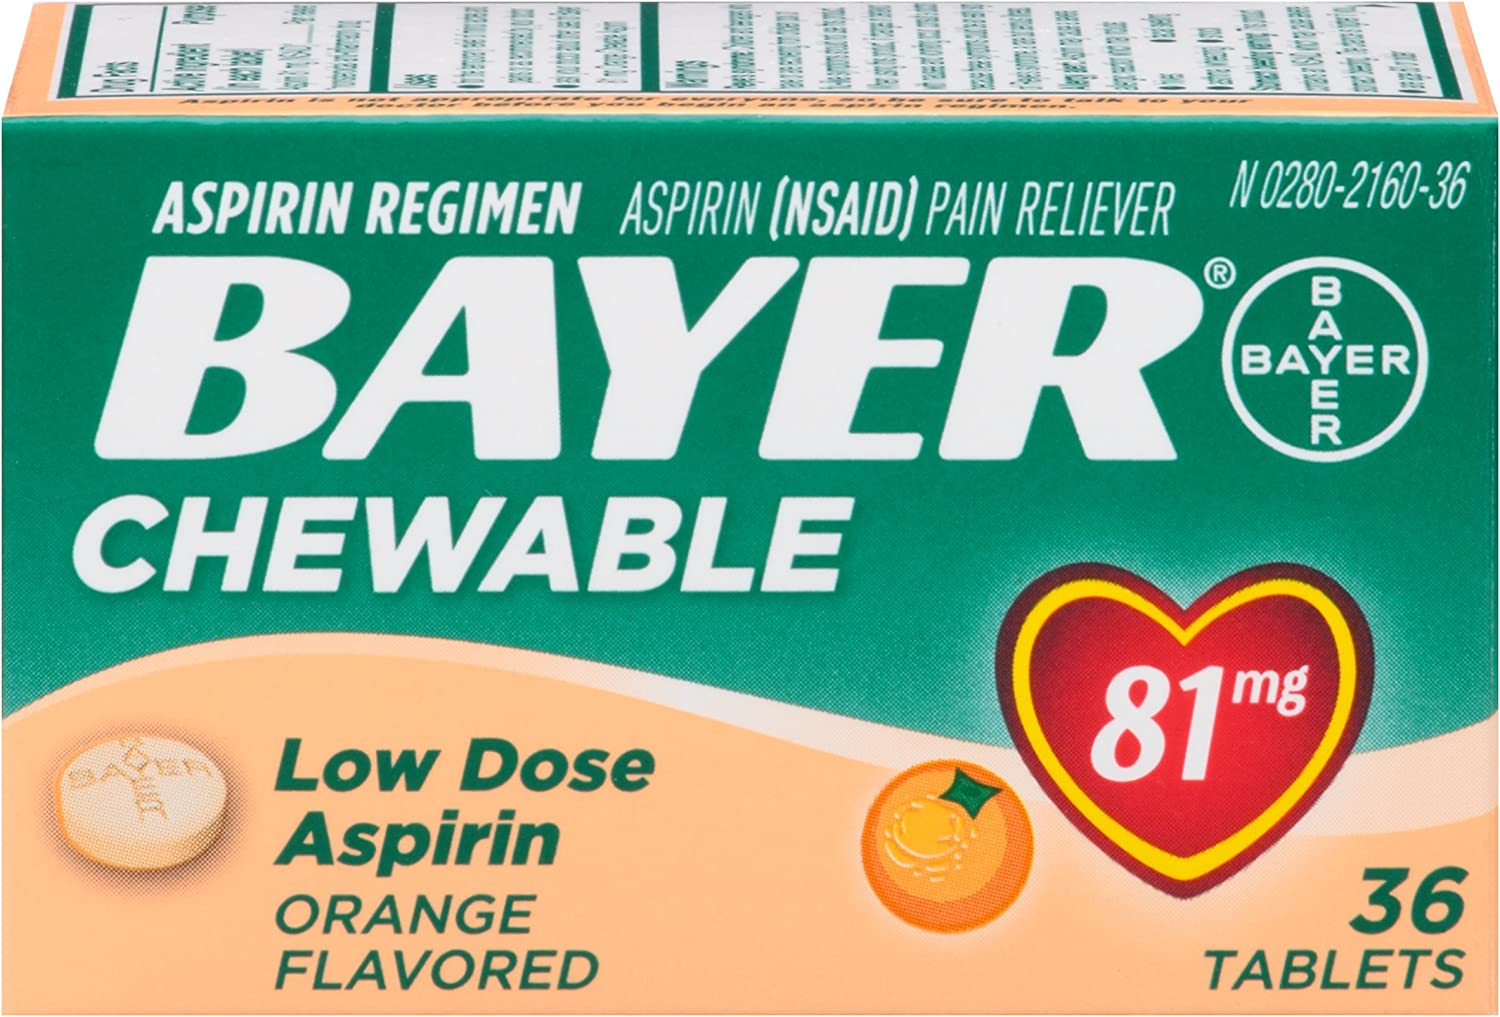 Aspirin Regimen Bayer 81mg Chewable Pain Ora Reliever Easy-to-use Tablets shop